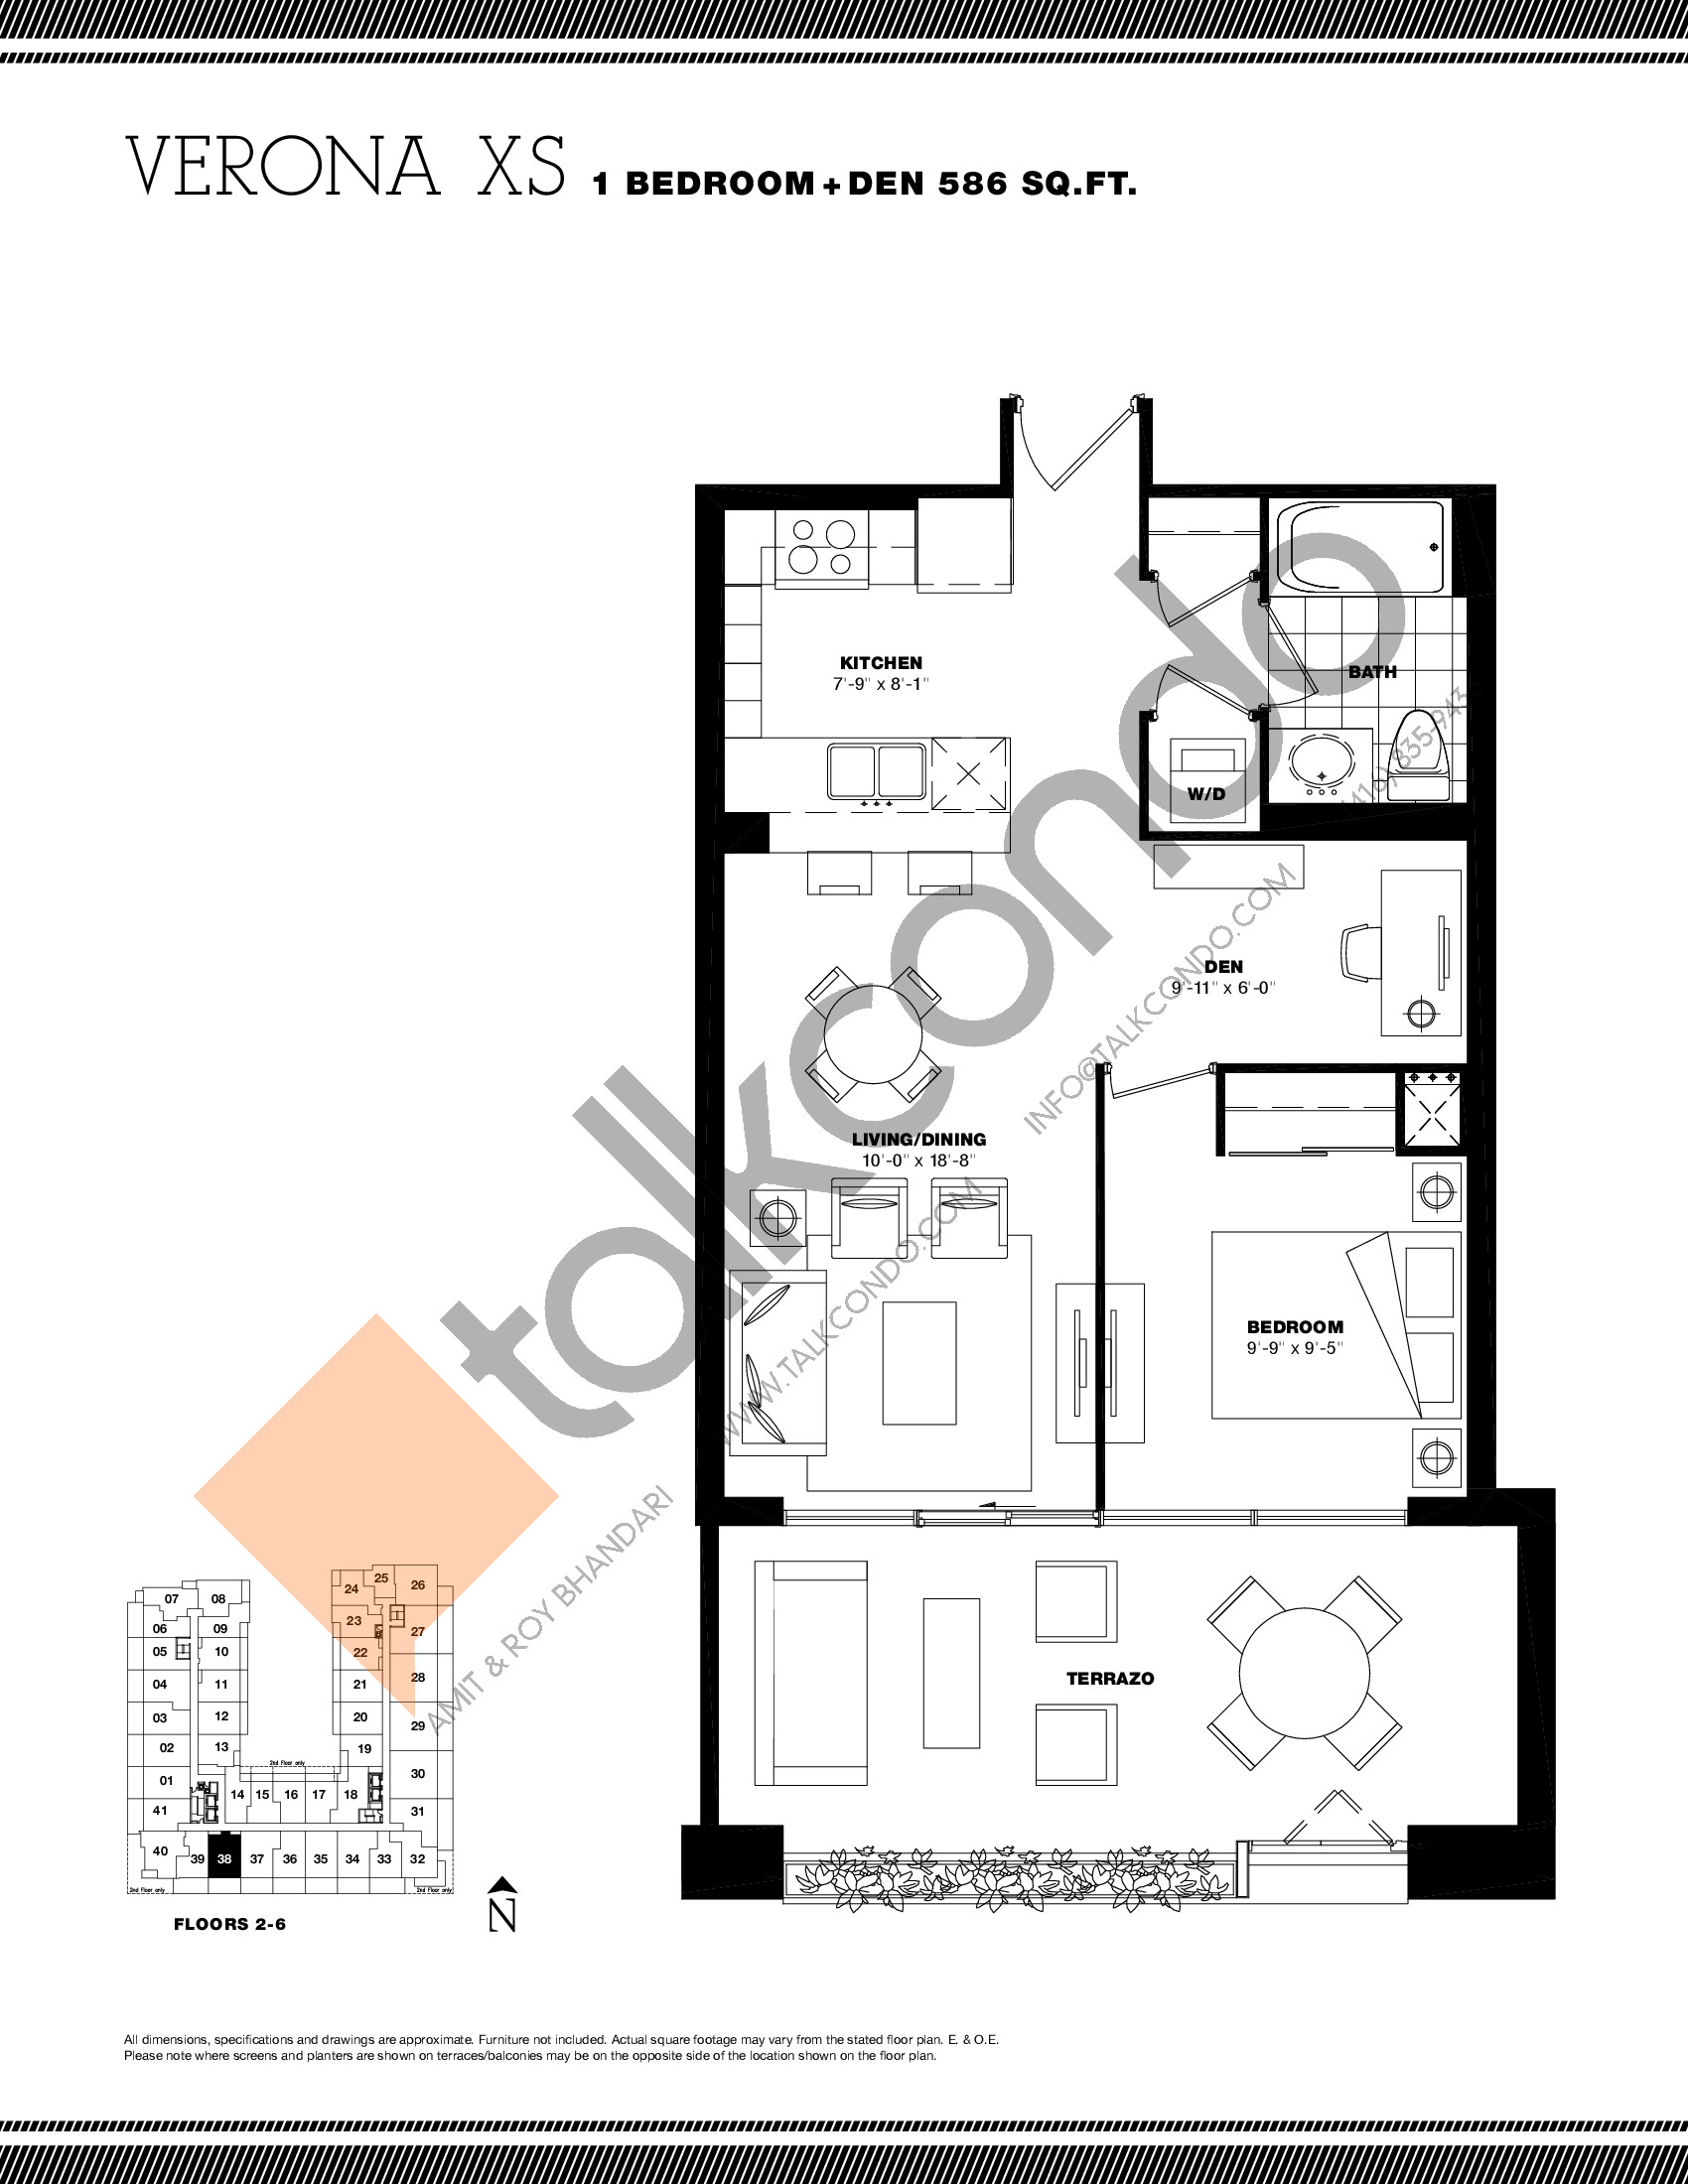 Verona XS Floor Plan at Residenze Palazzo at Treviso 3 Condos - 586 sq.ft